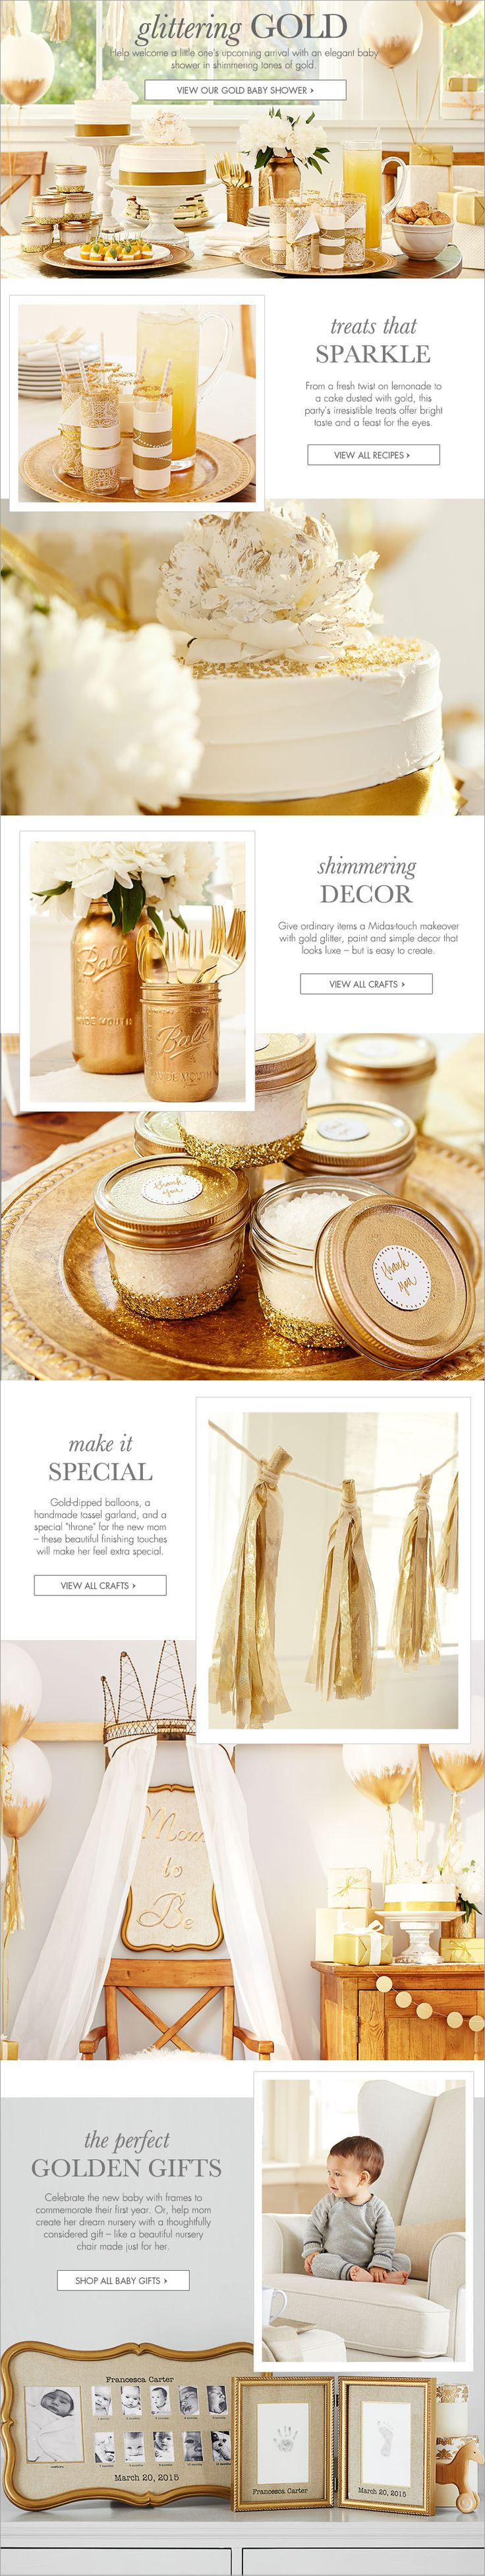 Gold Baby Shower | Pottery Barn Kids (A GOLD BABY SHOWER) Nice!!